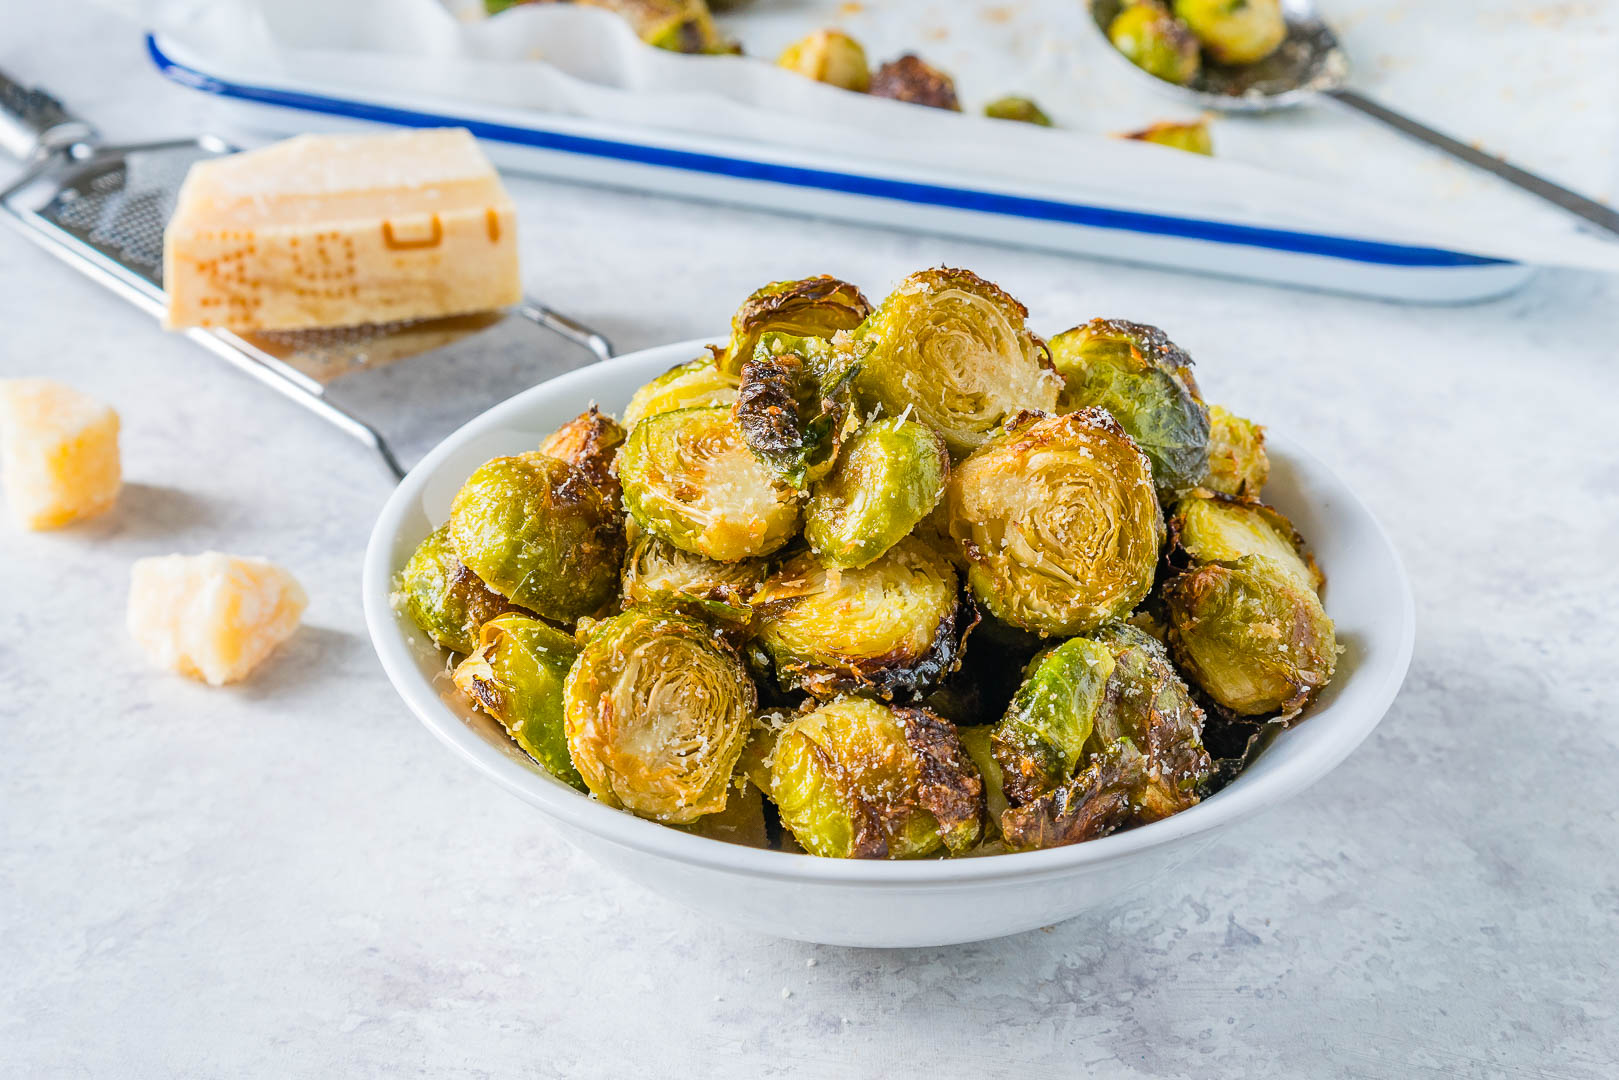 Roasted Brussels Sprouts Clean Recipe